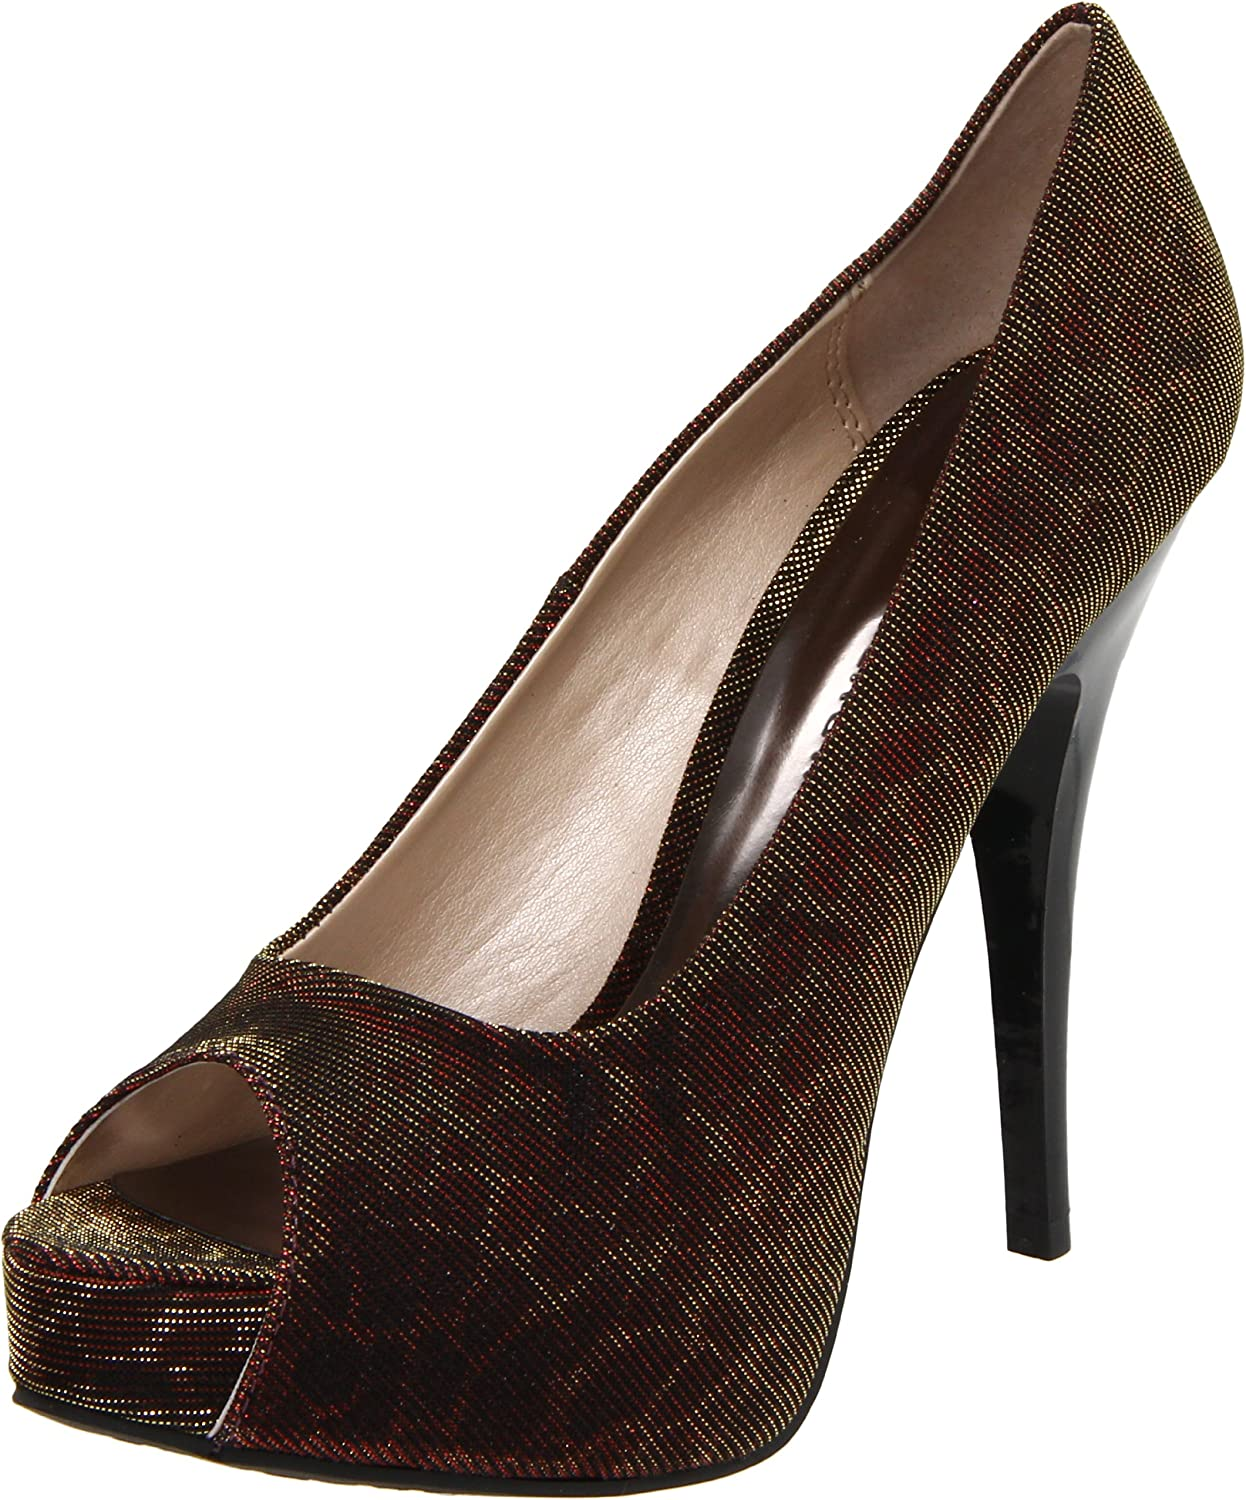 Ranking integrated 1st place Chinese Laundry Jacksonville Mall Women's Hot Pump Spots Peep-Toe